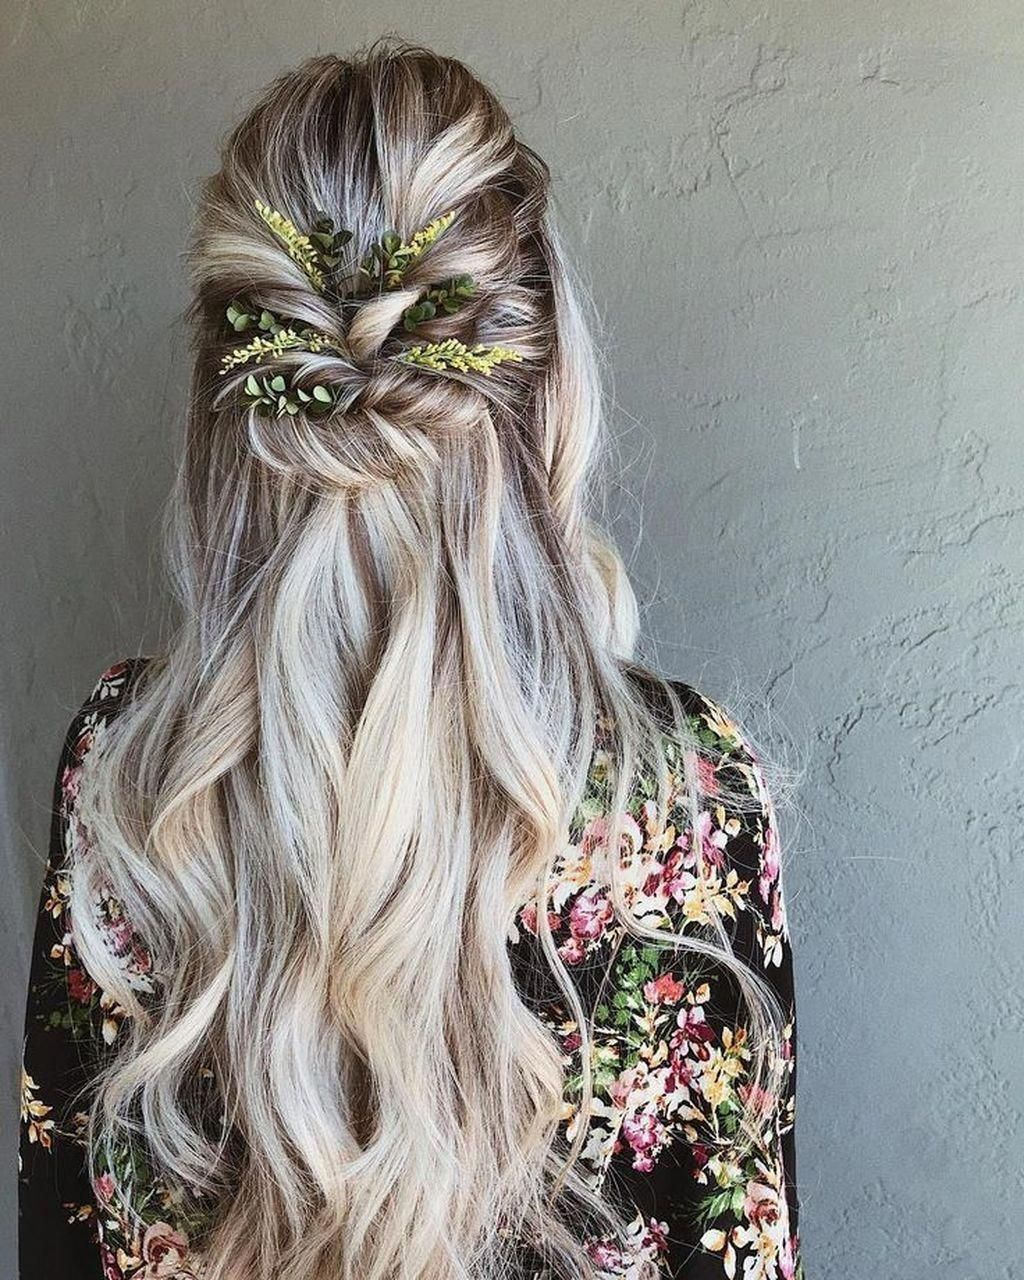 """Really love this. <a class=""""pintag"""" href=""""/explore/weddinghairstylesupdo/"""" title=""""#weddinghairstylesupdo explore Pinterest"""">#weddinghairstylesupdo</a><p><a href=""""http://www.homeinteriordesign.org/2018/02/short-guide-to-interior-decoration.html"""">Short guide to interior decoration</a></p>"""